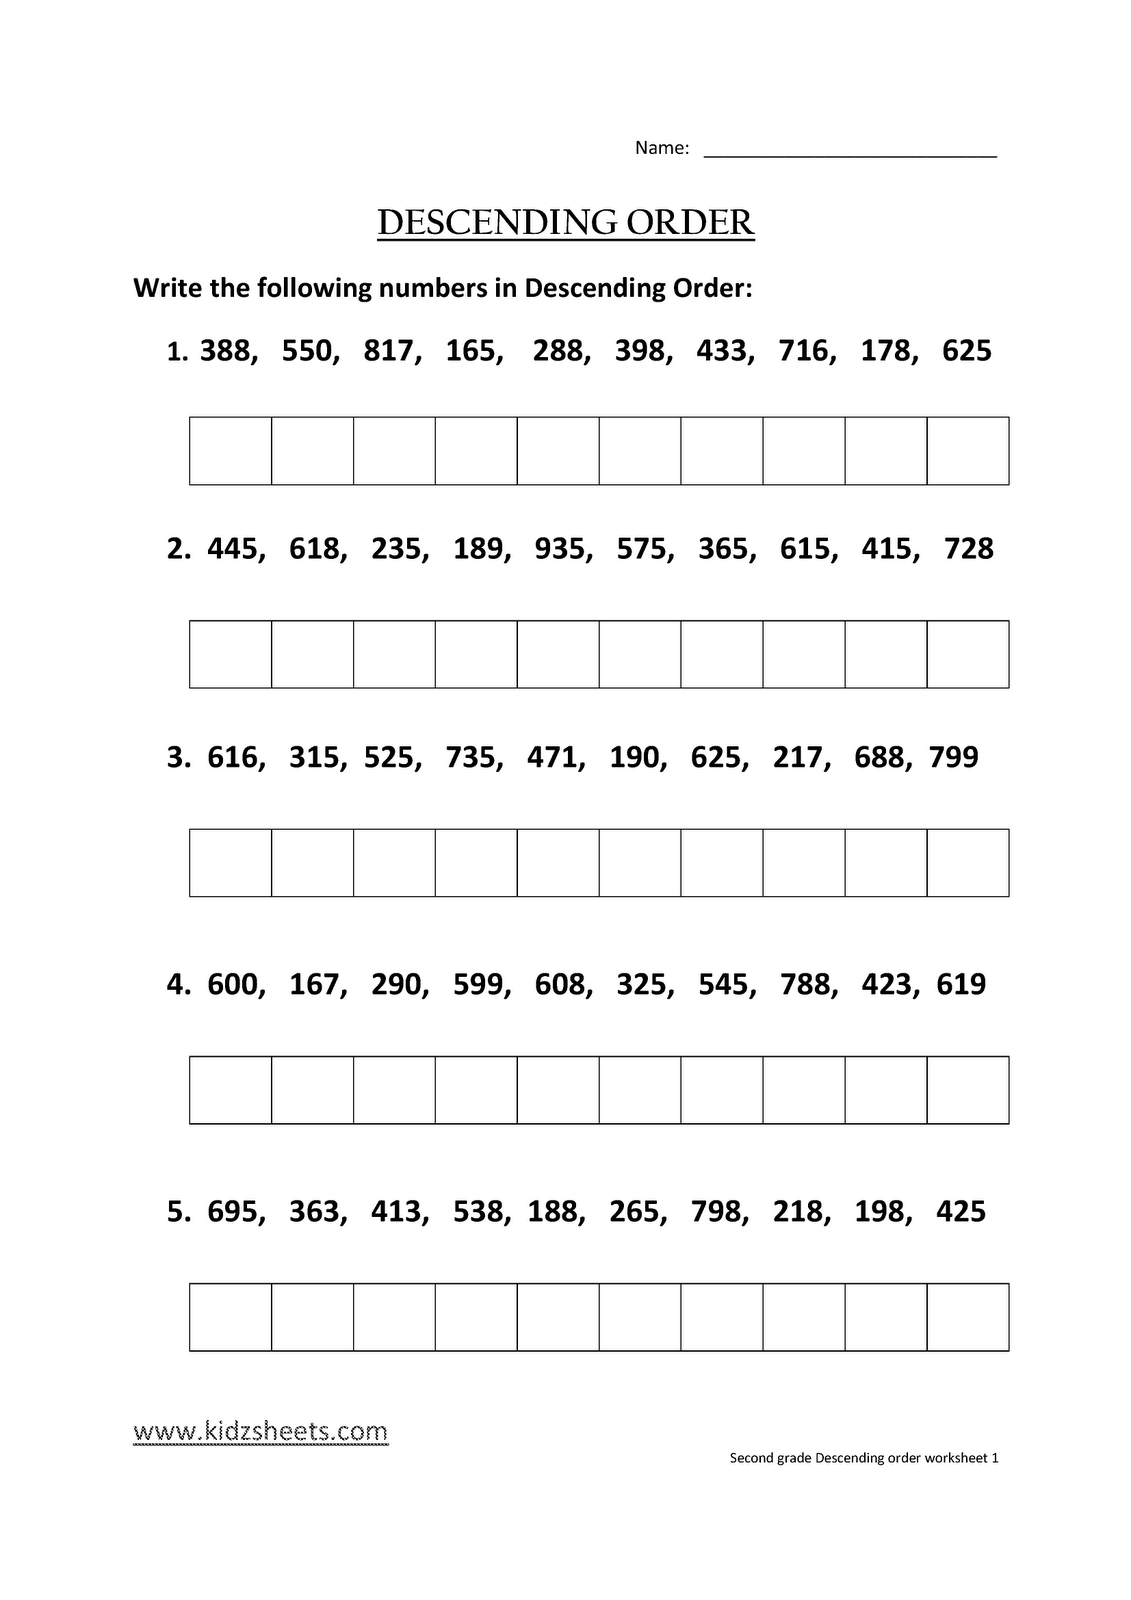 Kidz Worksheets Second Grade Descending Order Worksheet1